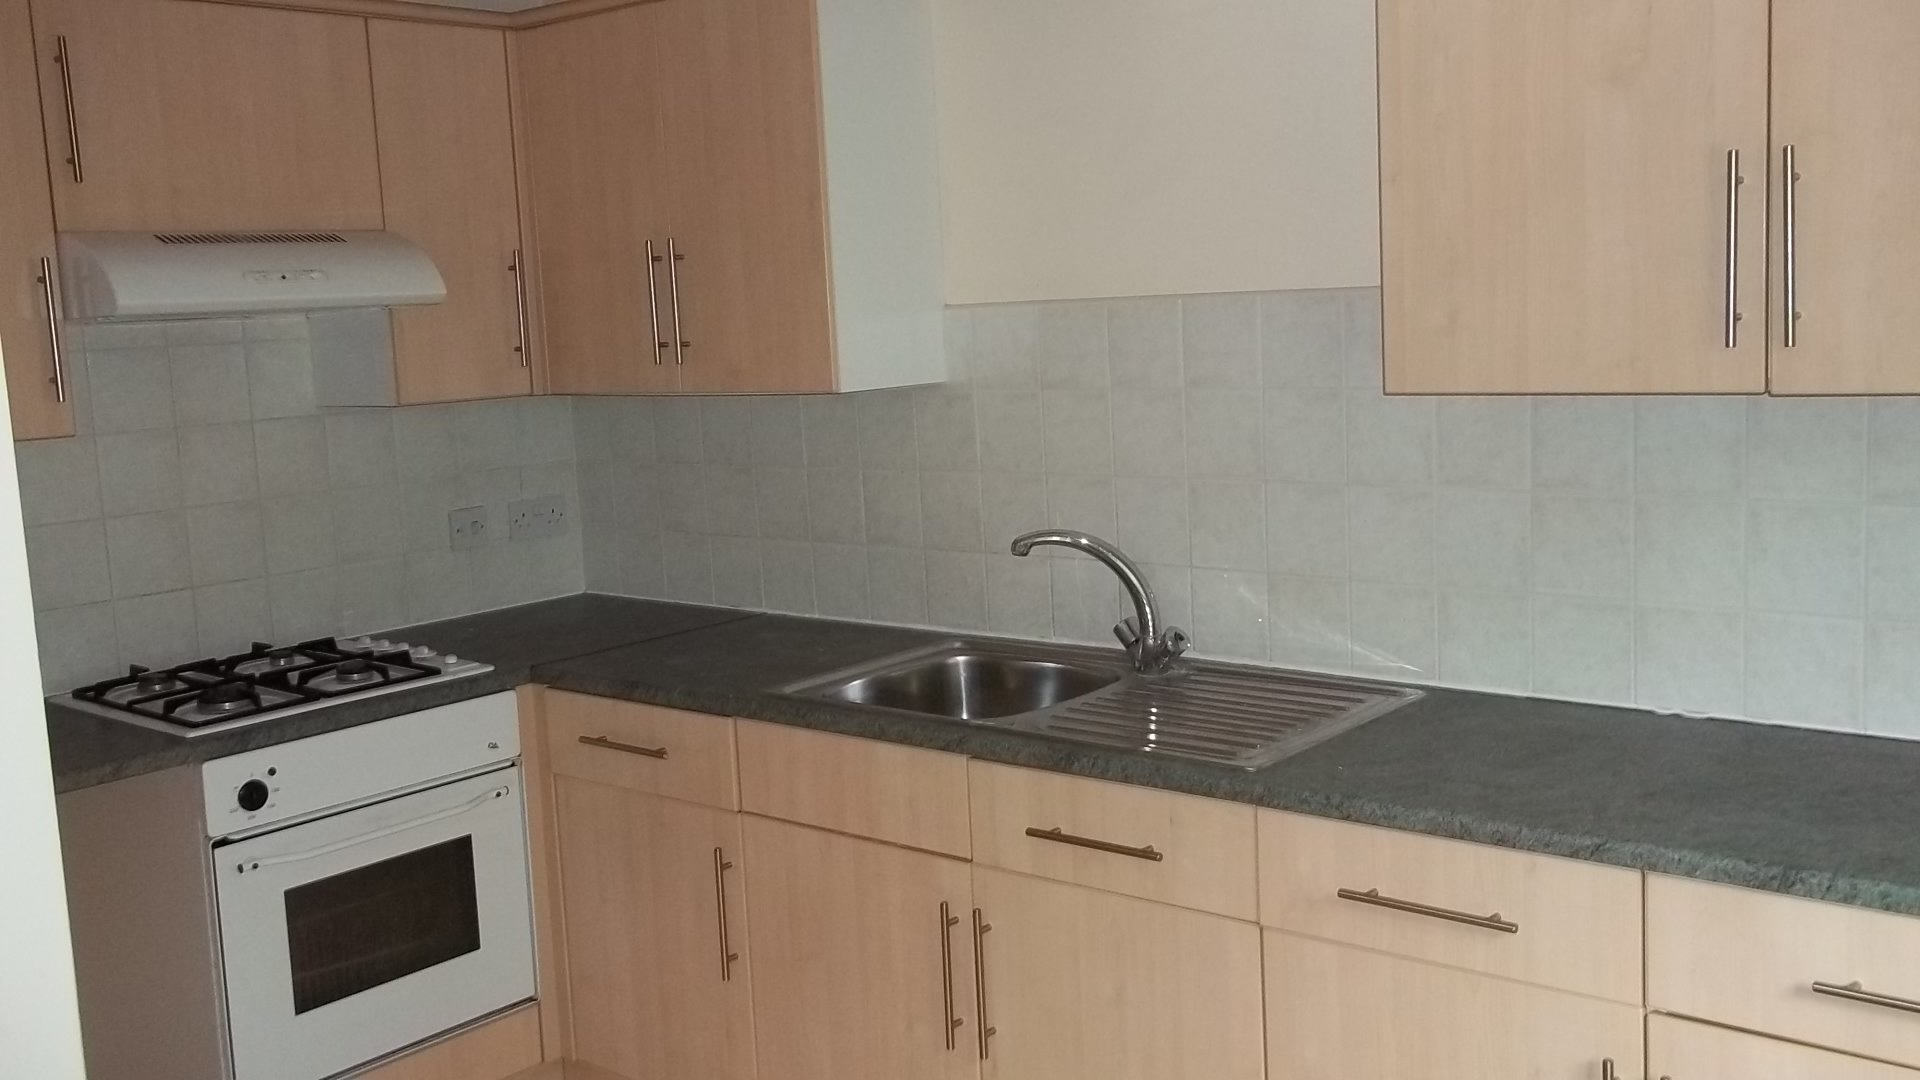 1 bed flat to rent allandale road leicester le2 2da 1 bedroom unfurnished flat to rent on allandale road leicester leicestershire le2 by sciox Gallery